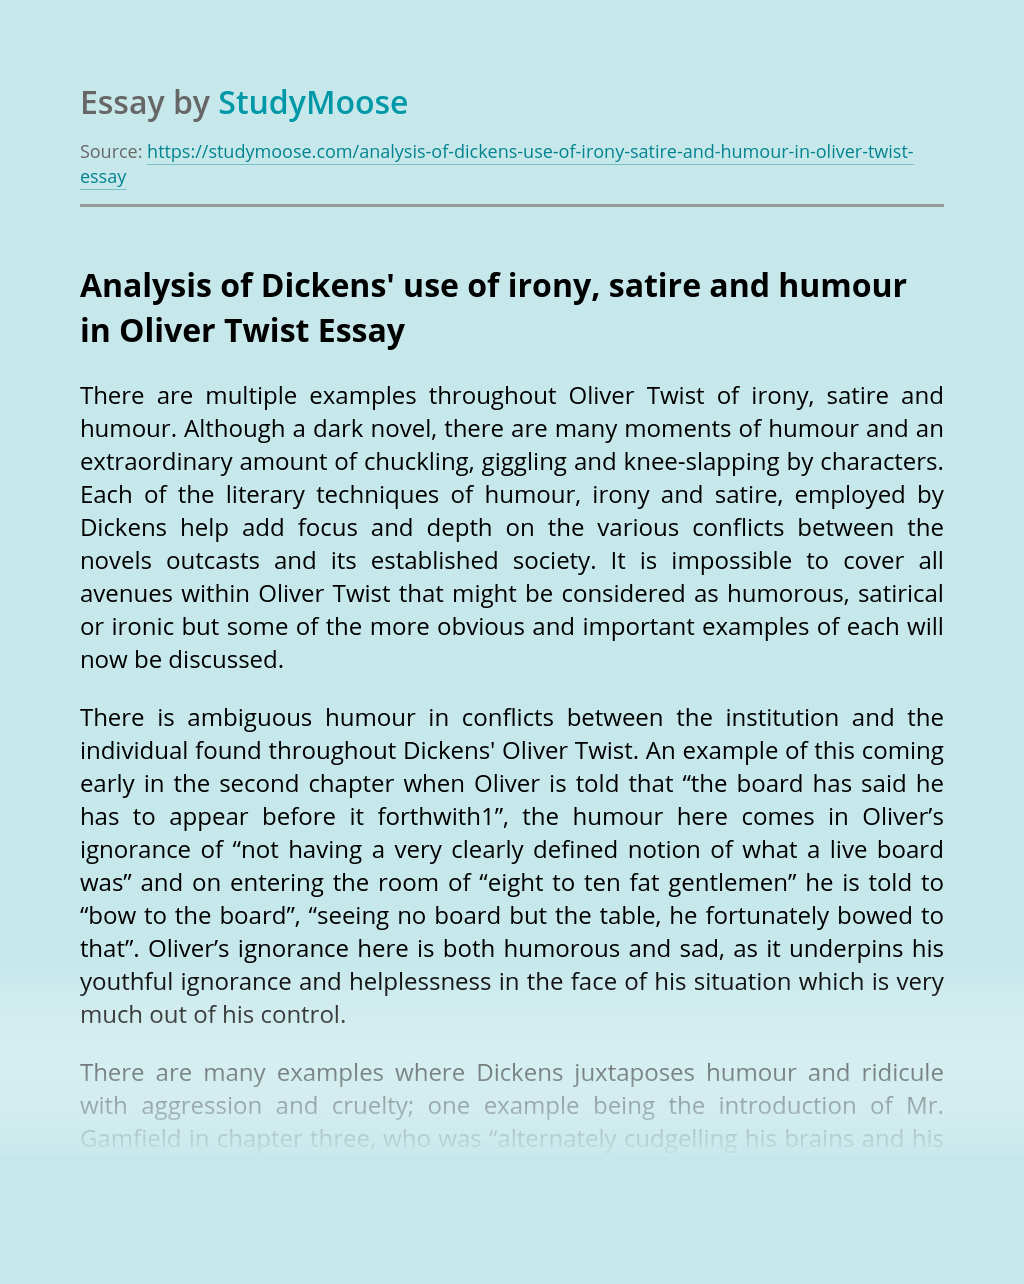 Analysis of Dickens' use of irony, satire and humour in Oliver Twist